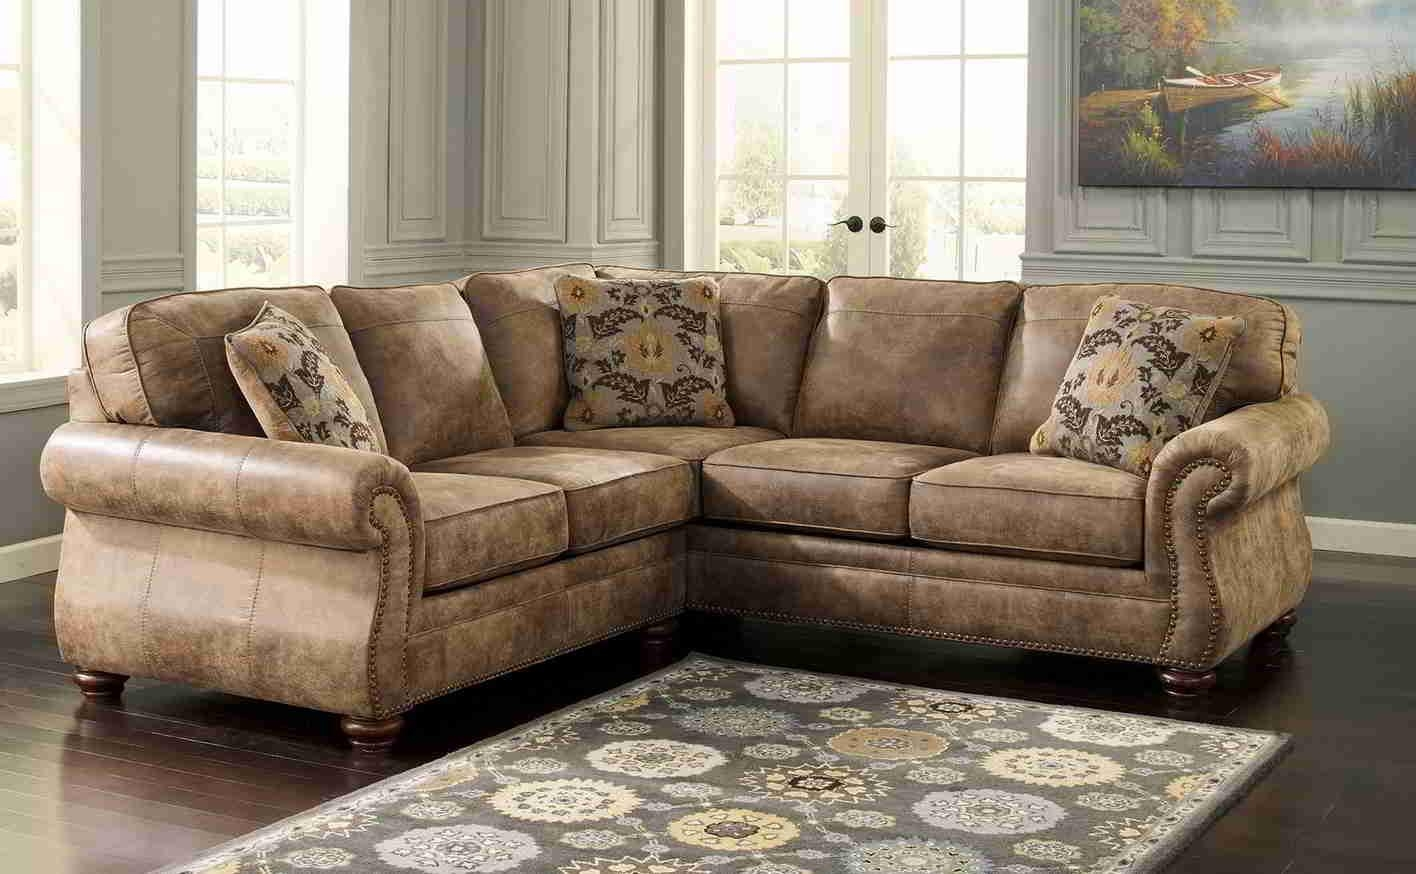 Awesome Sectional Sofas San Diego 24 For Leather Sectional Sofas With Leather Sectional Sofas Toronto (Photo 5 of 20)